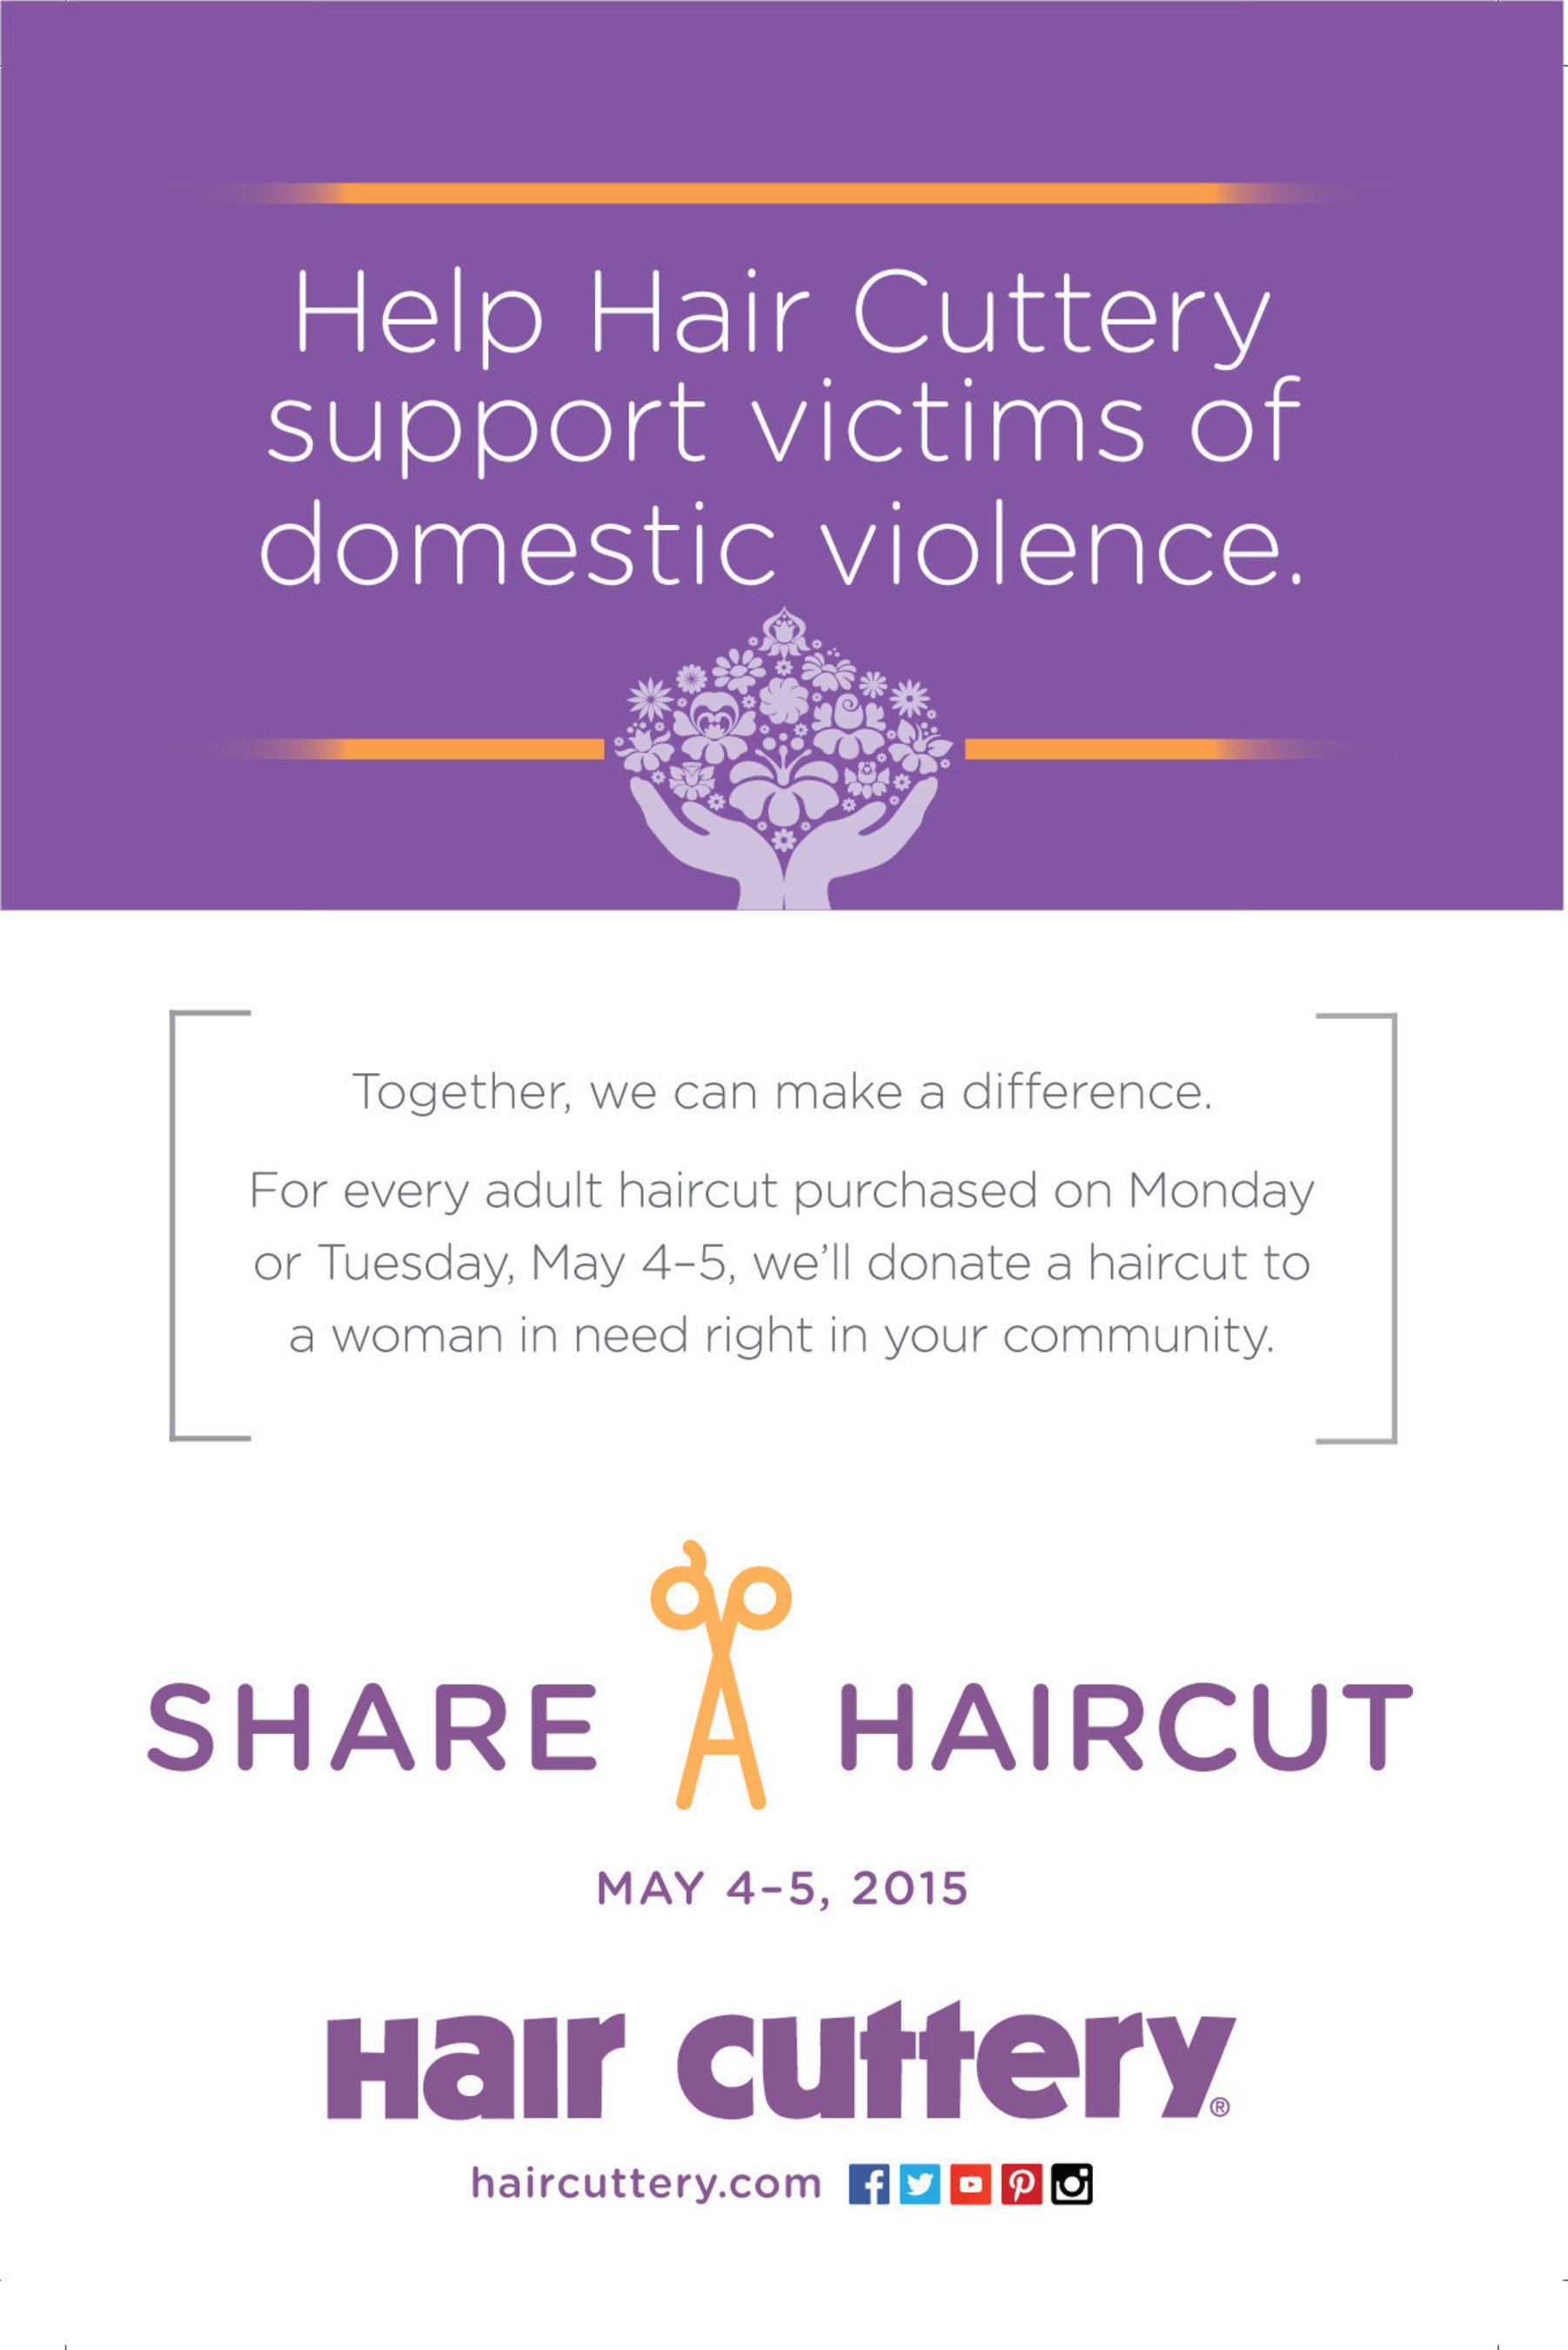 For every haircut purchased on Monday or Tuesday, May 4-5, Hair Cuttery will donate a haircut to a victim of domestic violence.